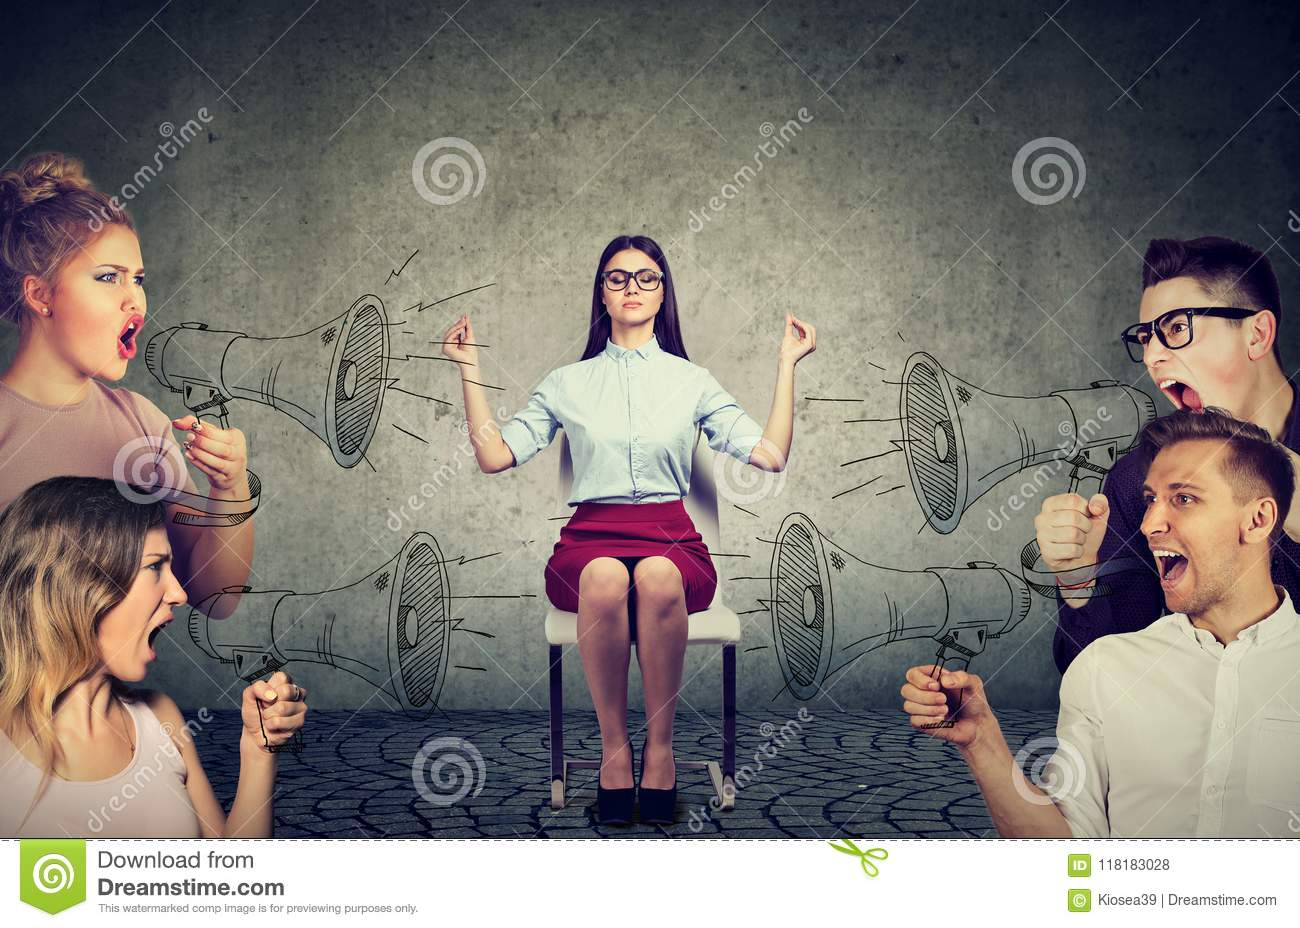 Meditating businesswoman paying no attention to crowd of screaming angry people